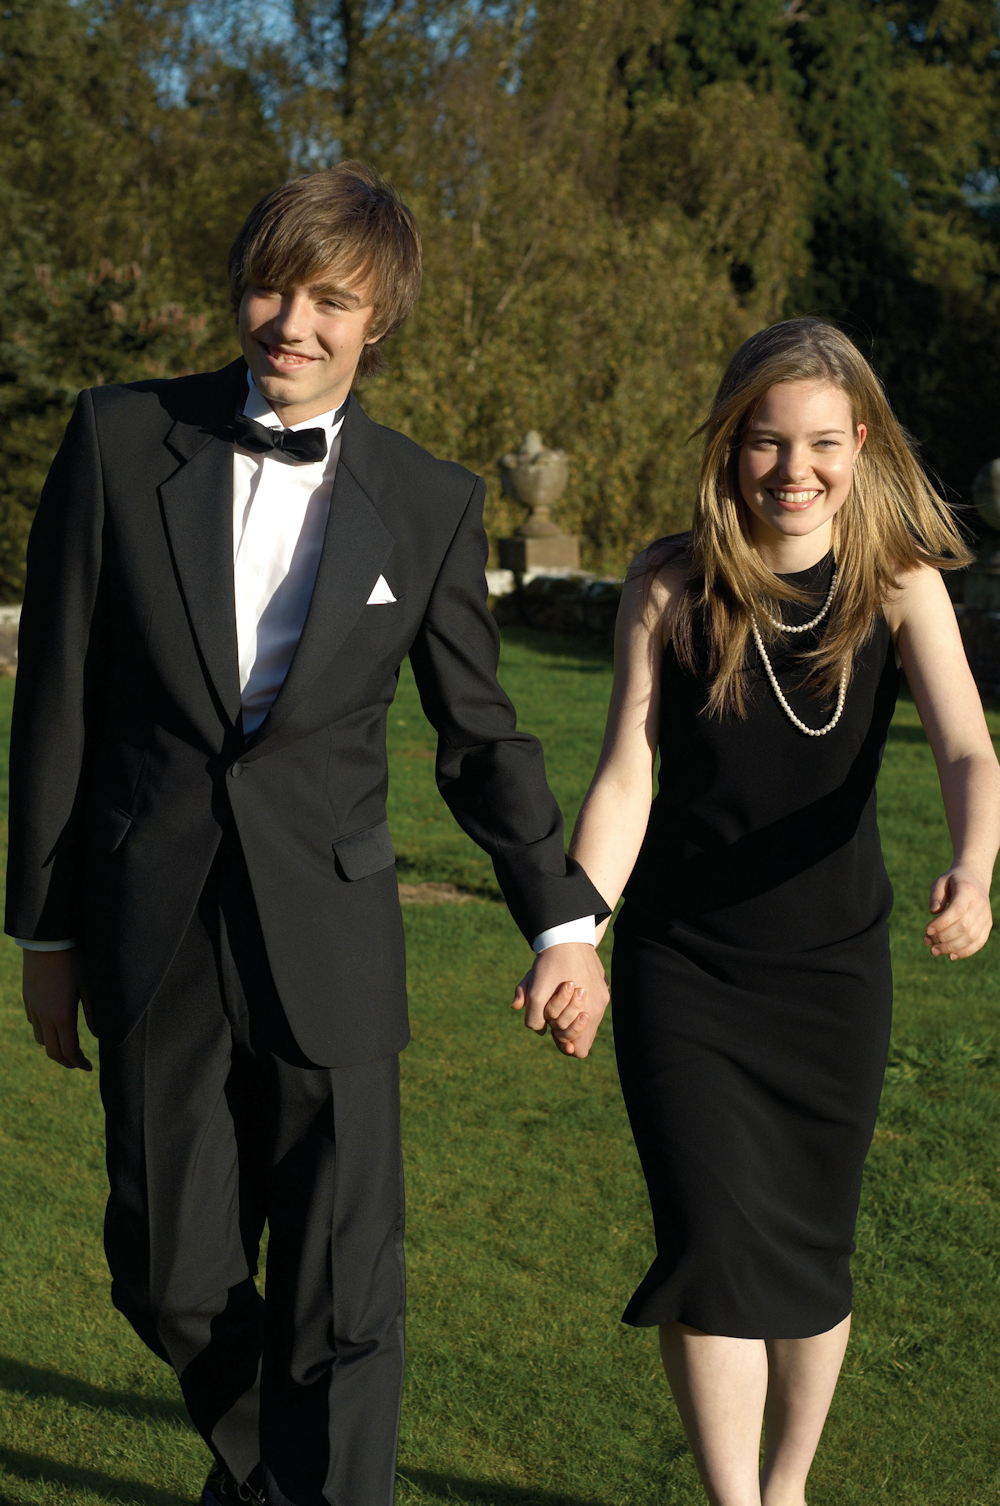 Prom Suit Hire - Go Suits